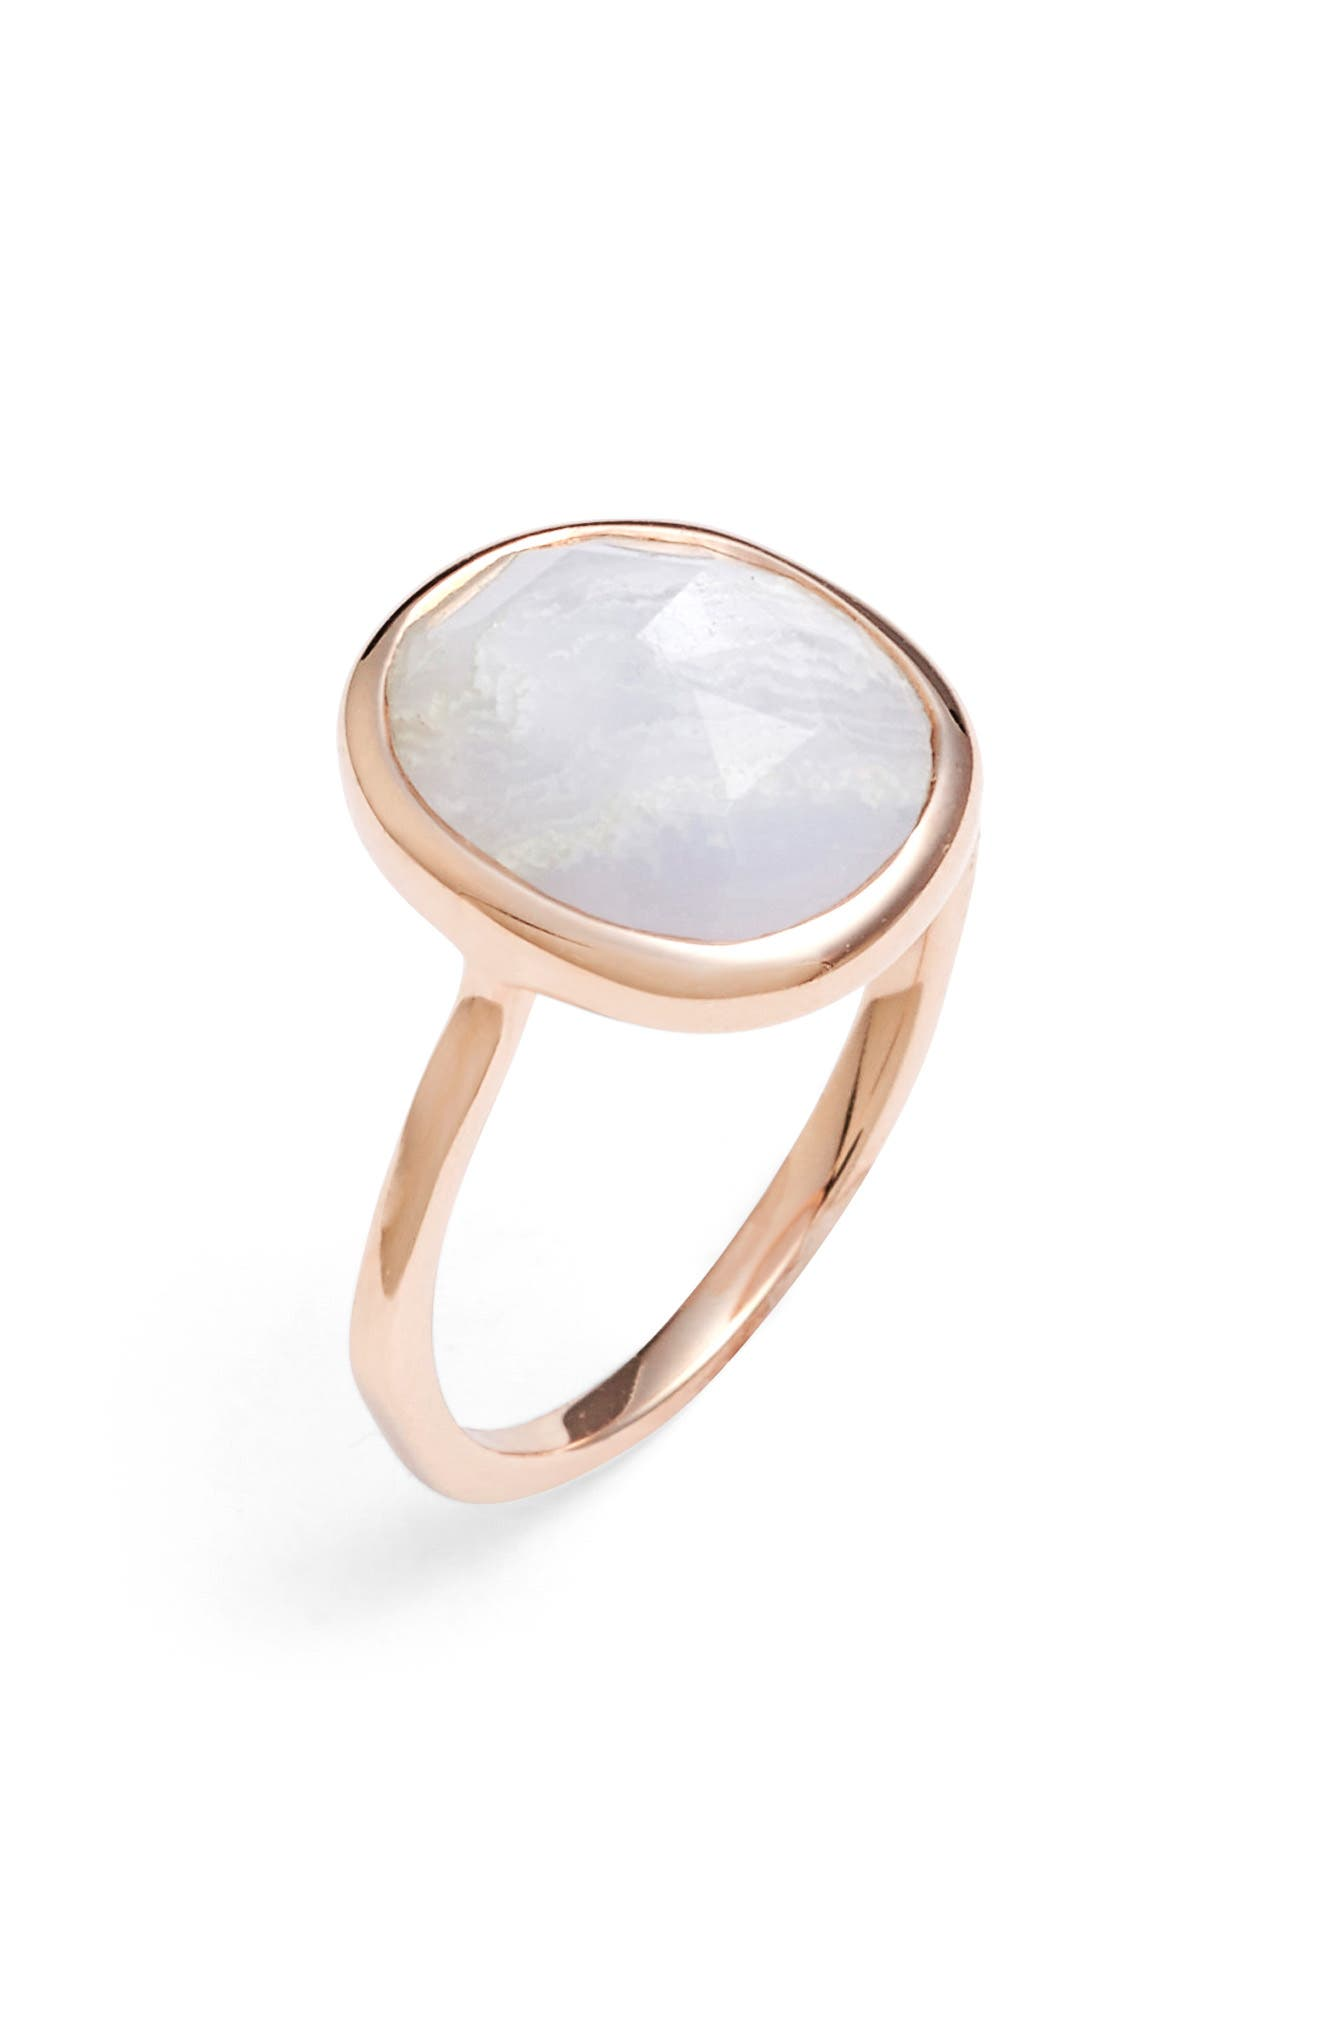 MONICA VINADER, Siren Medium Semiprecious Stone Stacking Ring, Alternate thumbnail 2, color, ROSE GOLD/ BLUE LACE AGATE